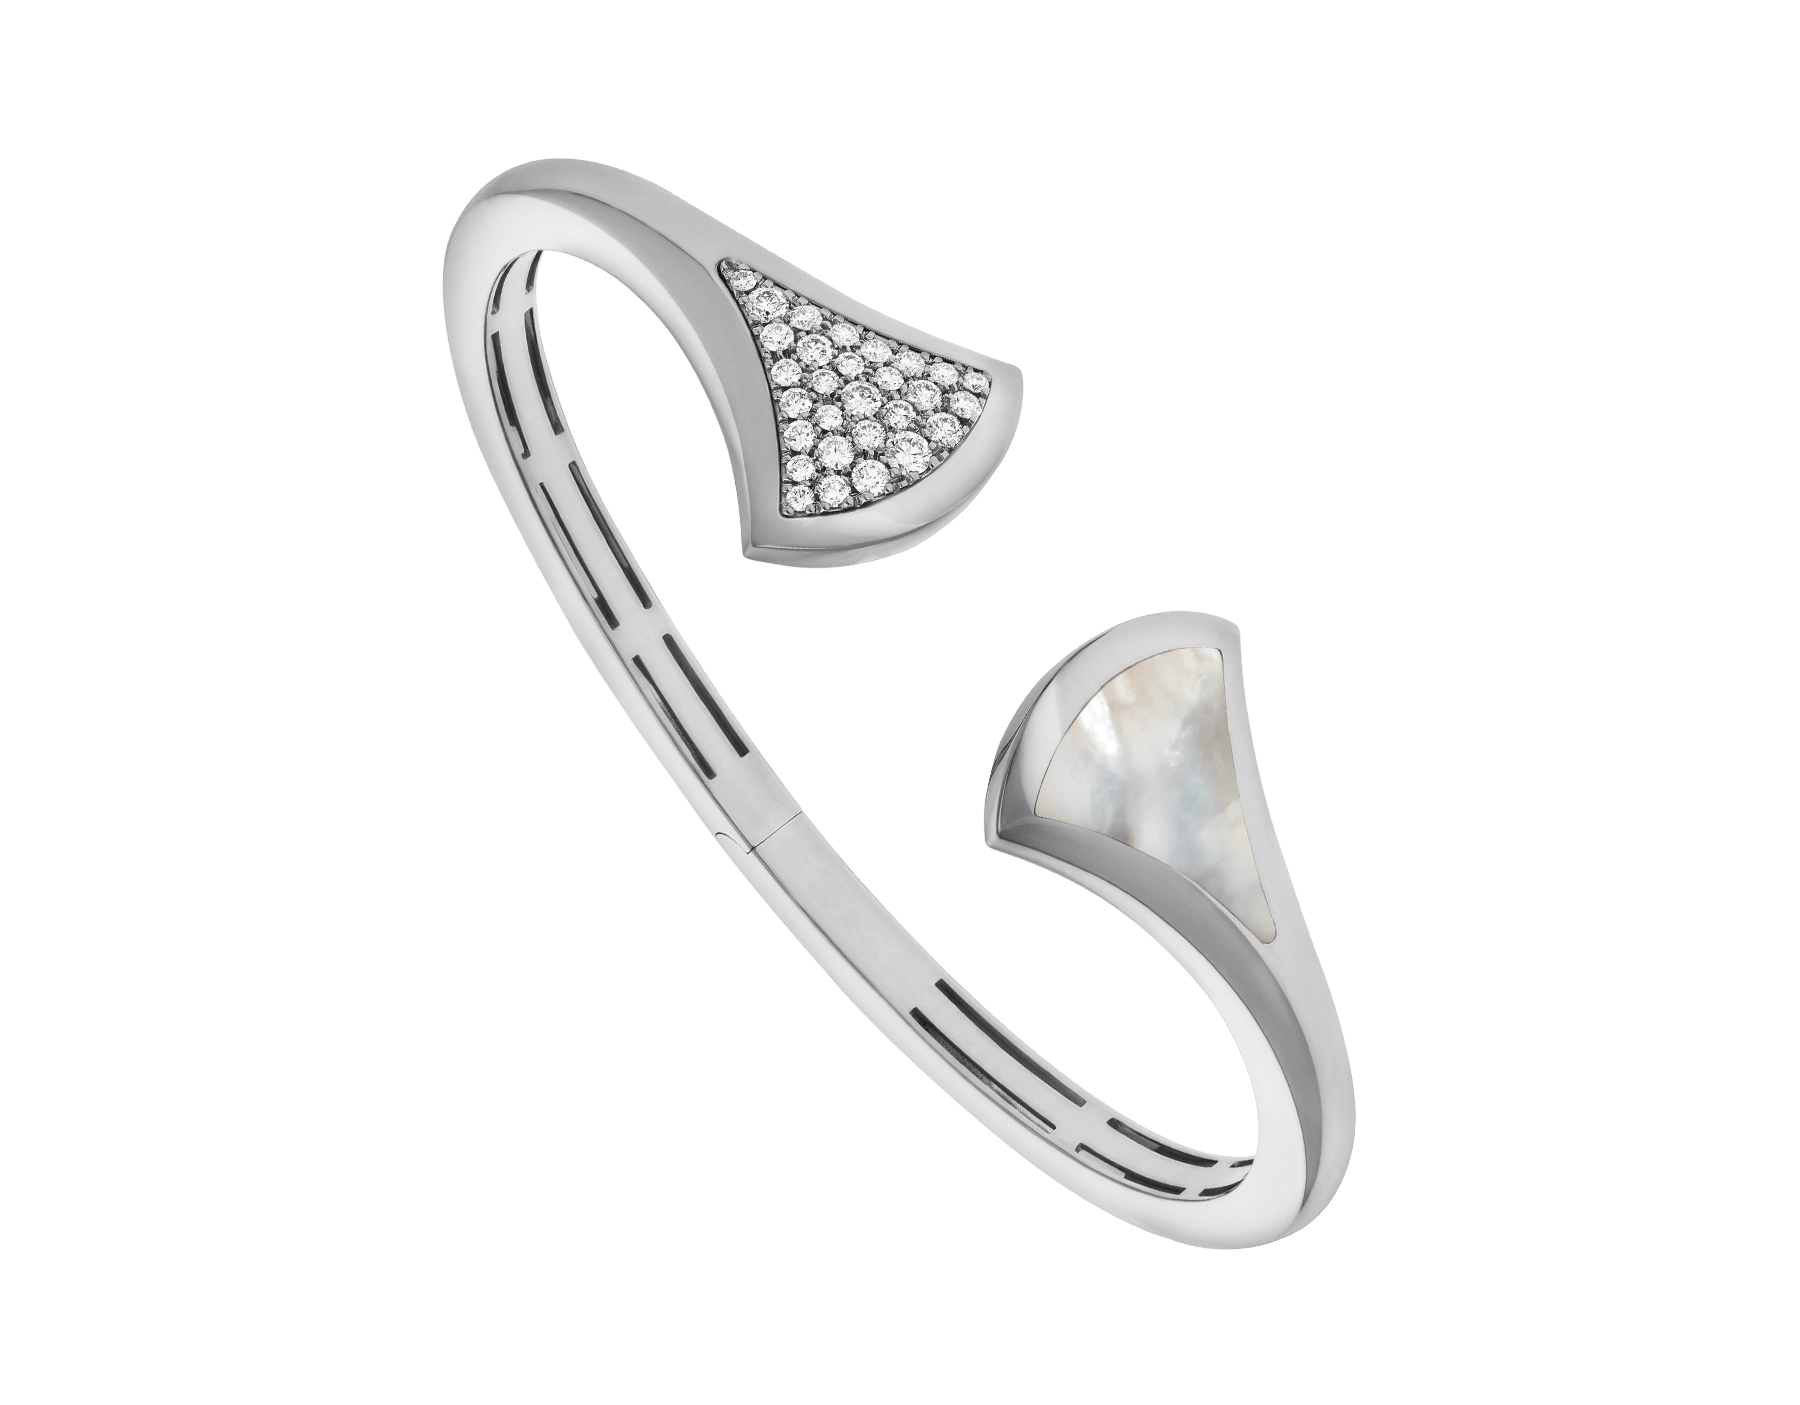 DIVAS' DREAM cuff bracelet in 18 kt white gold, set with mother-of-pearl and pavé diamonds (0.45 ct). BR857959 image 1